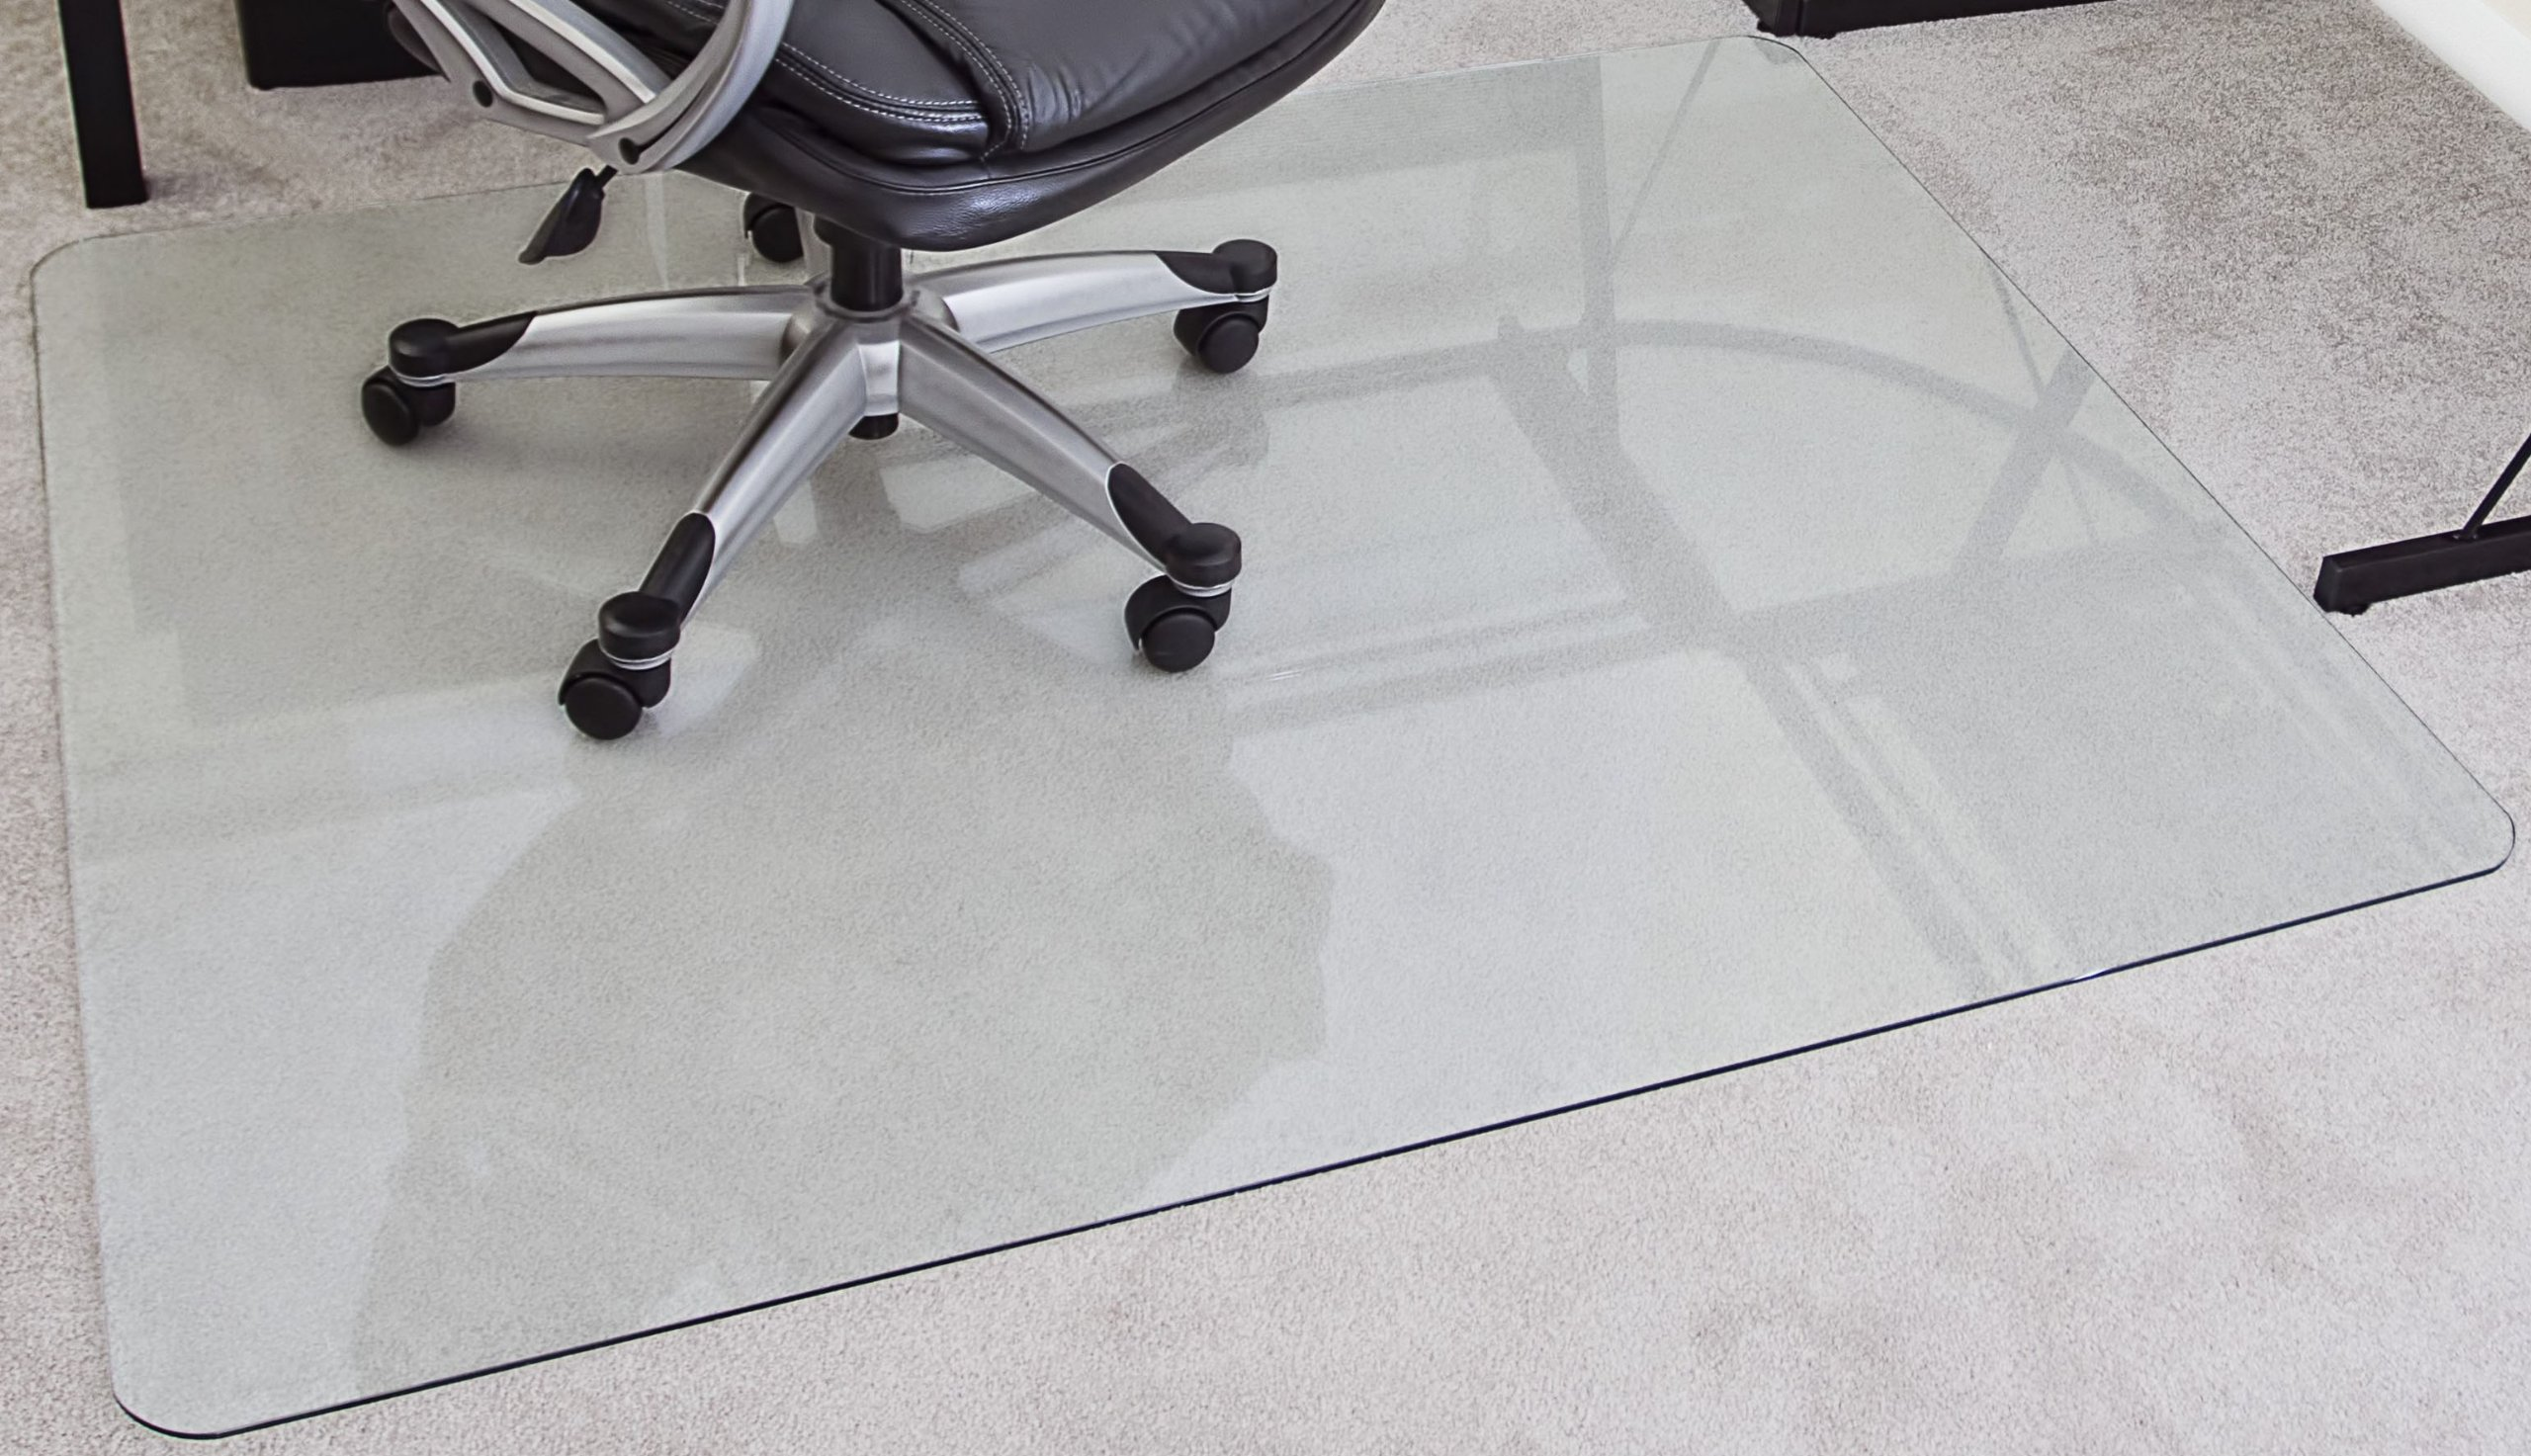 myGlassMat 48 x 60-Inch Tempered Glass Chair Mat for Carpet and Hard Floors, Rounded Corners, Smooth Polished Edges, 1/4-Inch Thick, Clear Glass (gcm48x60)